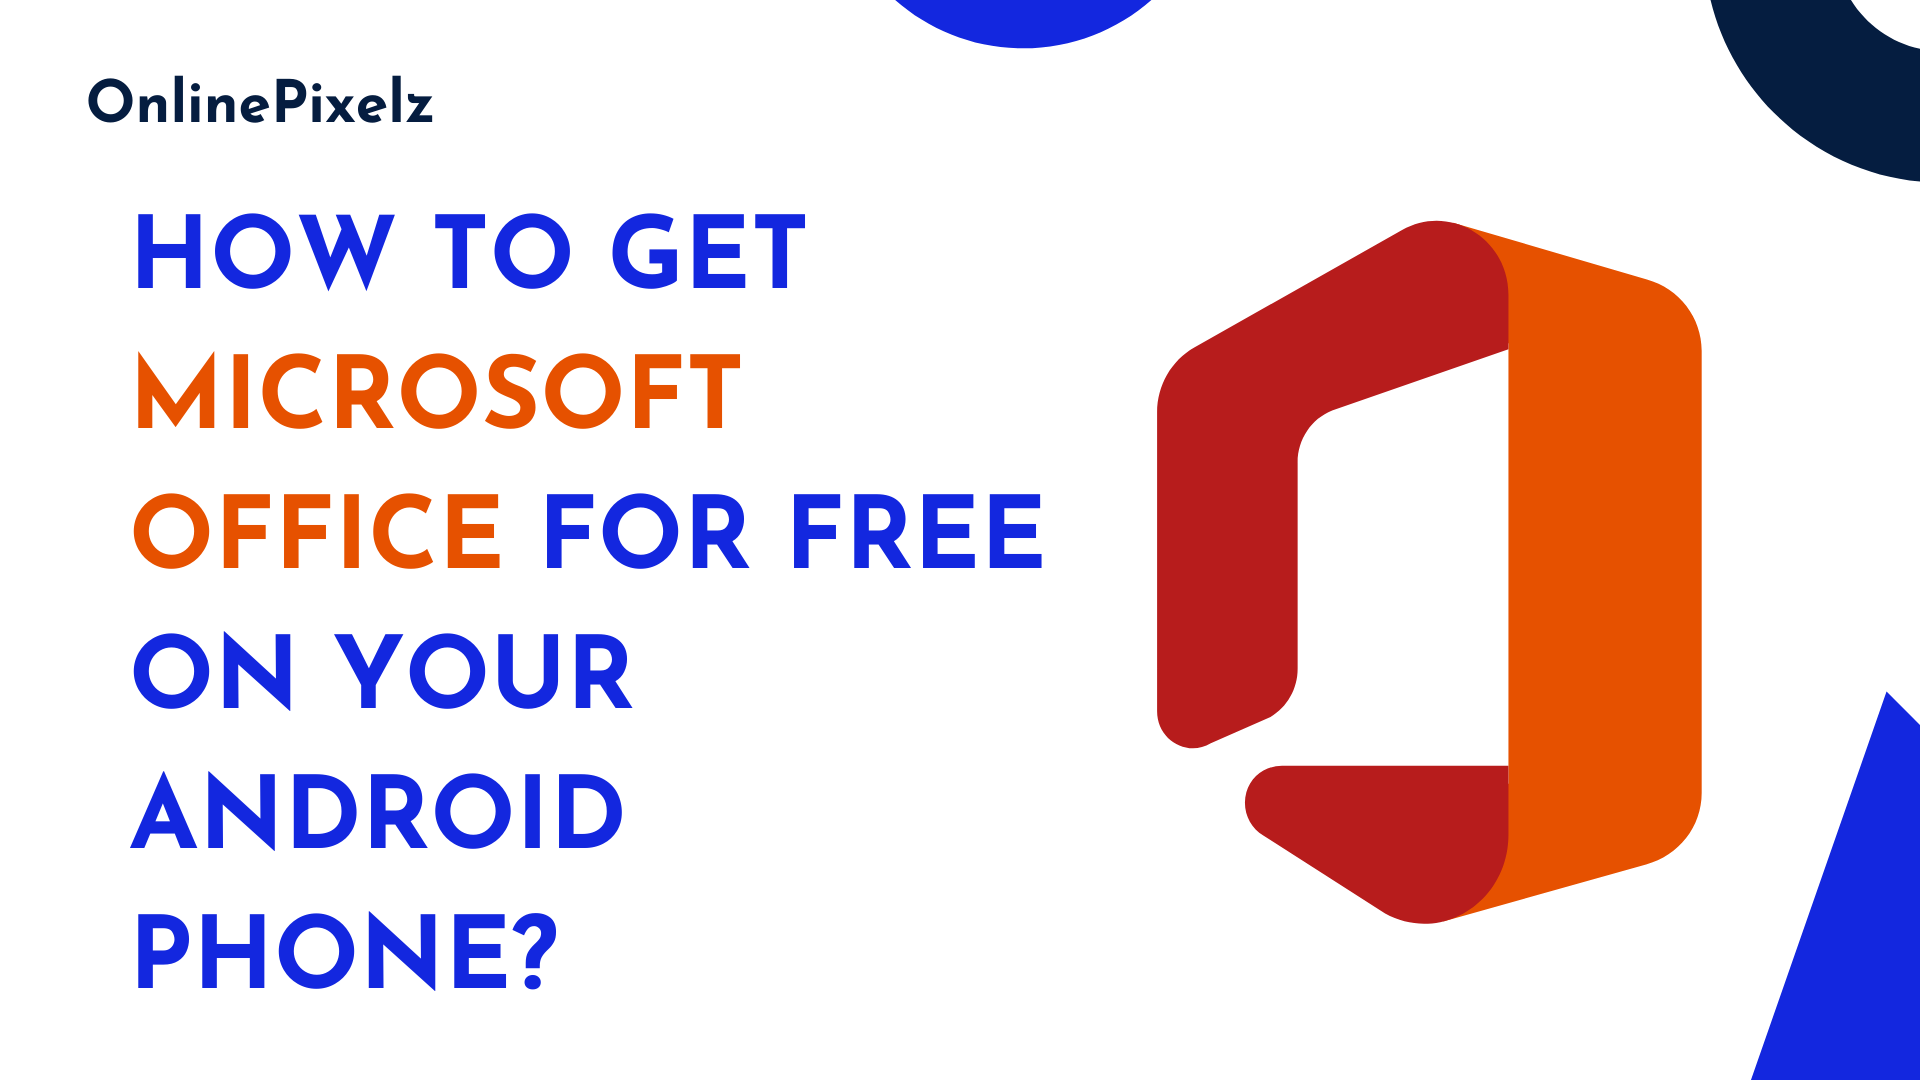 How to Get Microsoft Office For Free on Your Android Phone